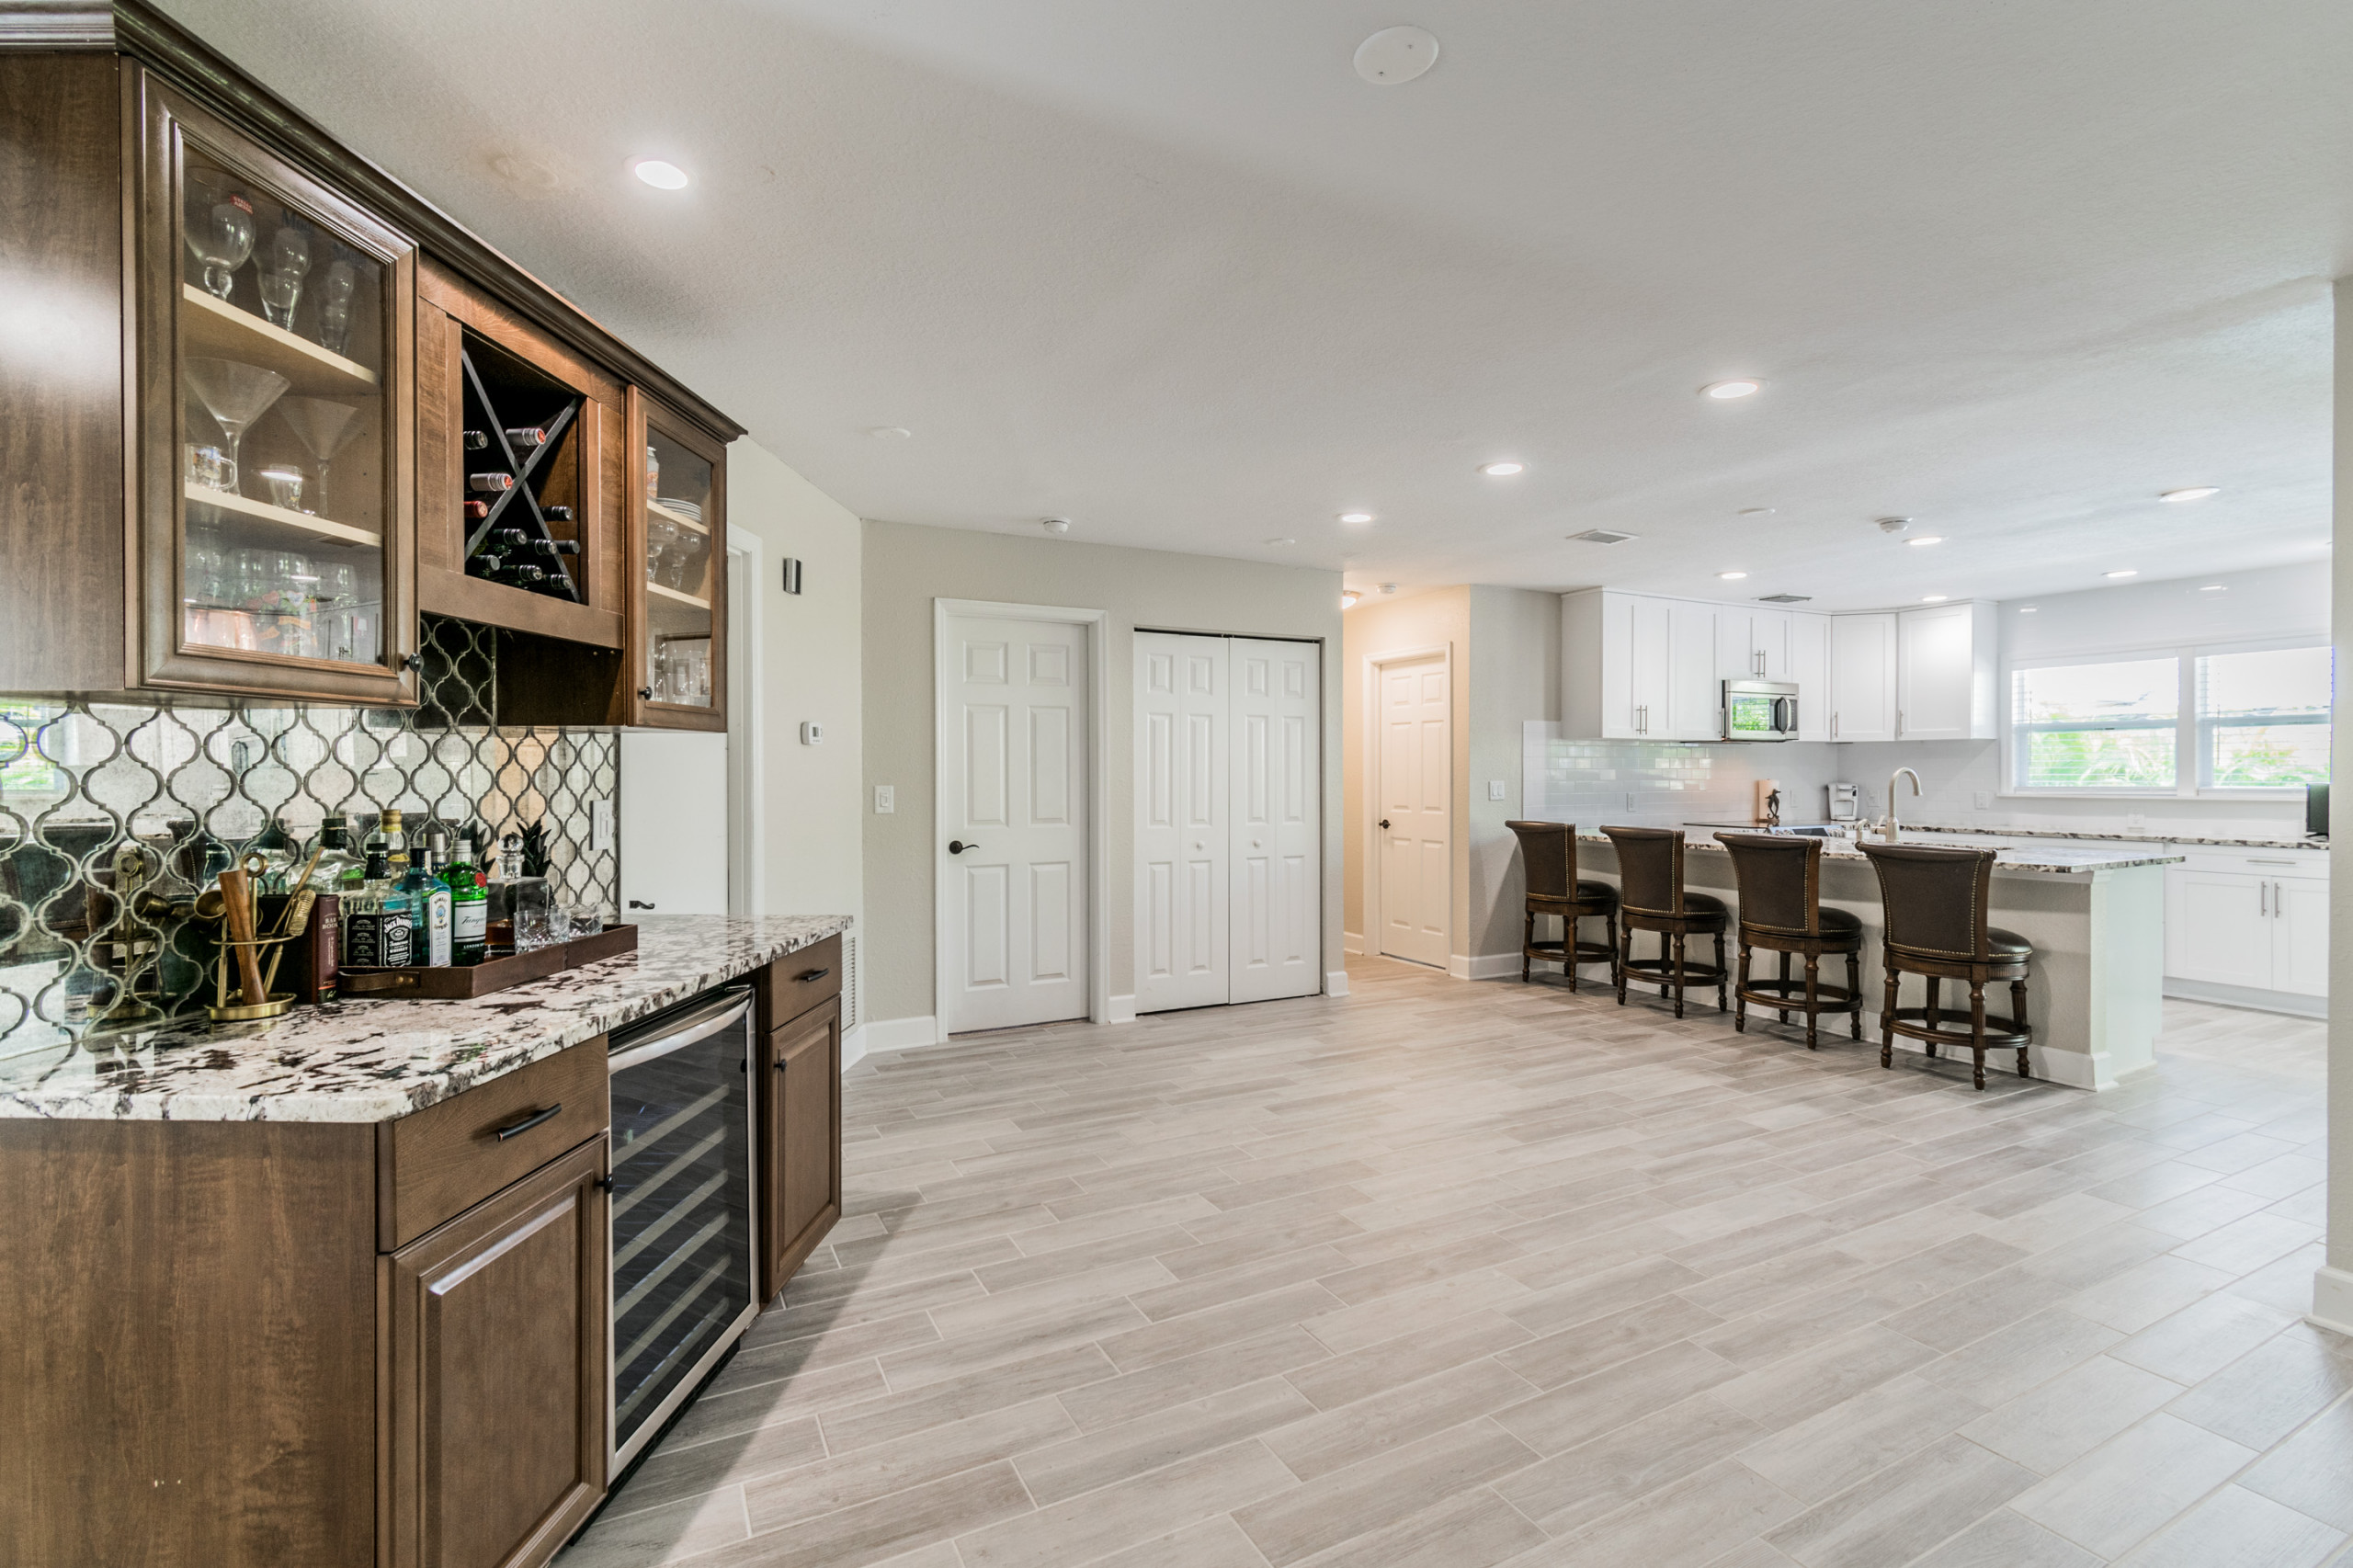 Built in bar with wine refrigerator